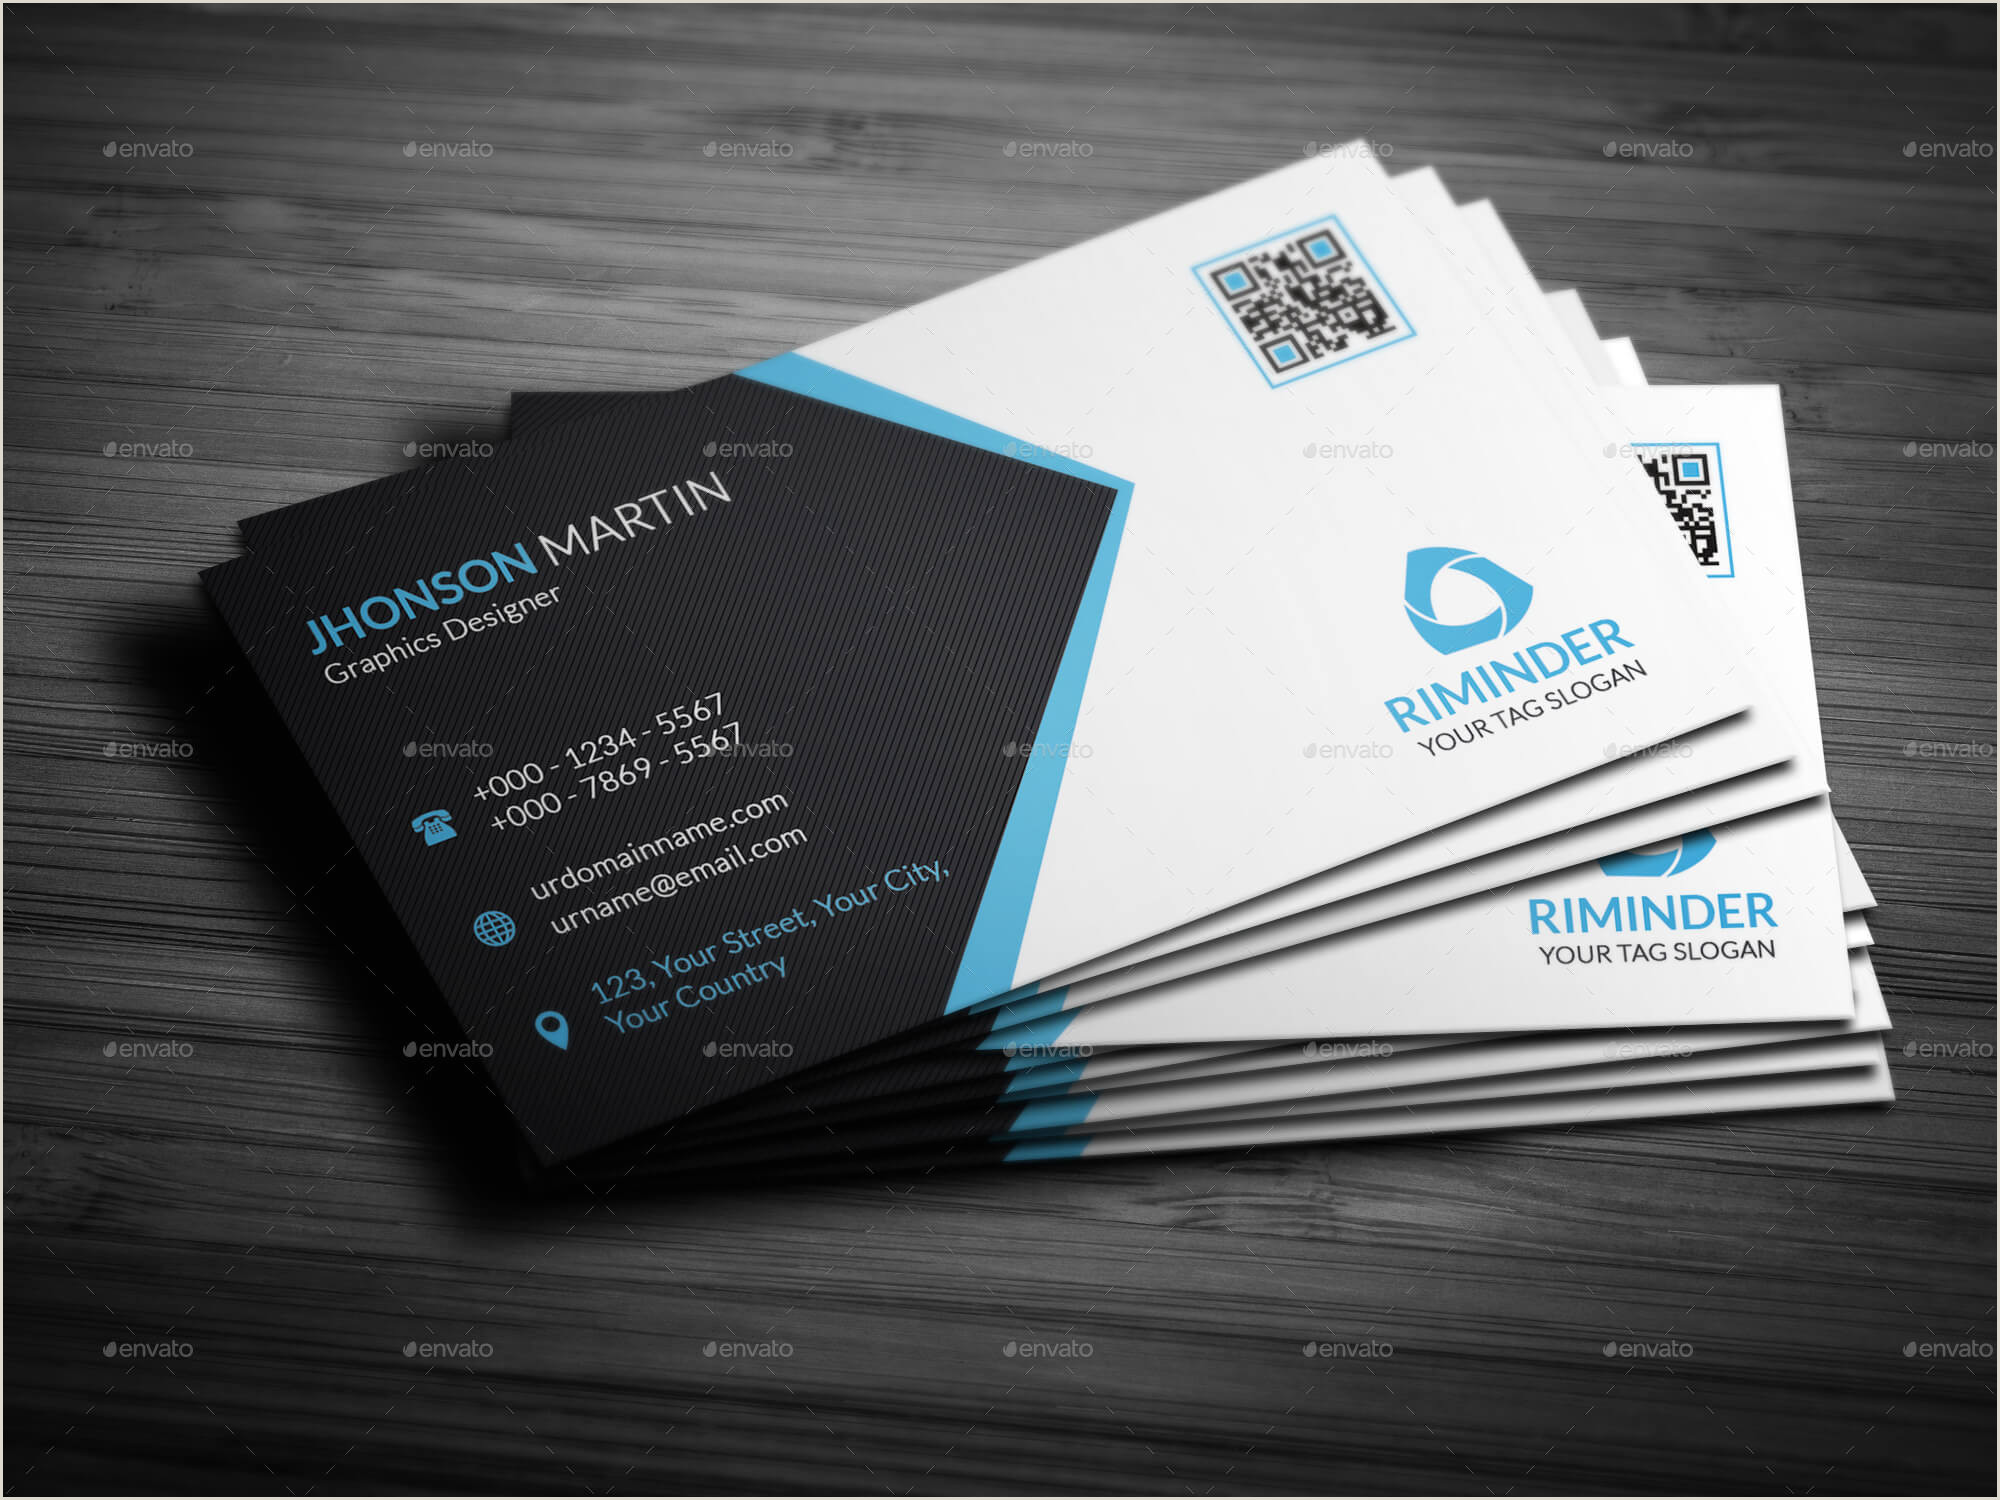 Best Business Cards When In 5/24 Flyertalk Design Outstanding 2side Business Card In 24 Hrs For $5